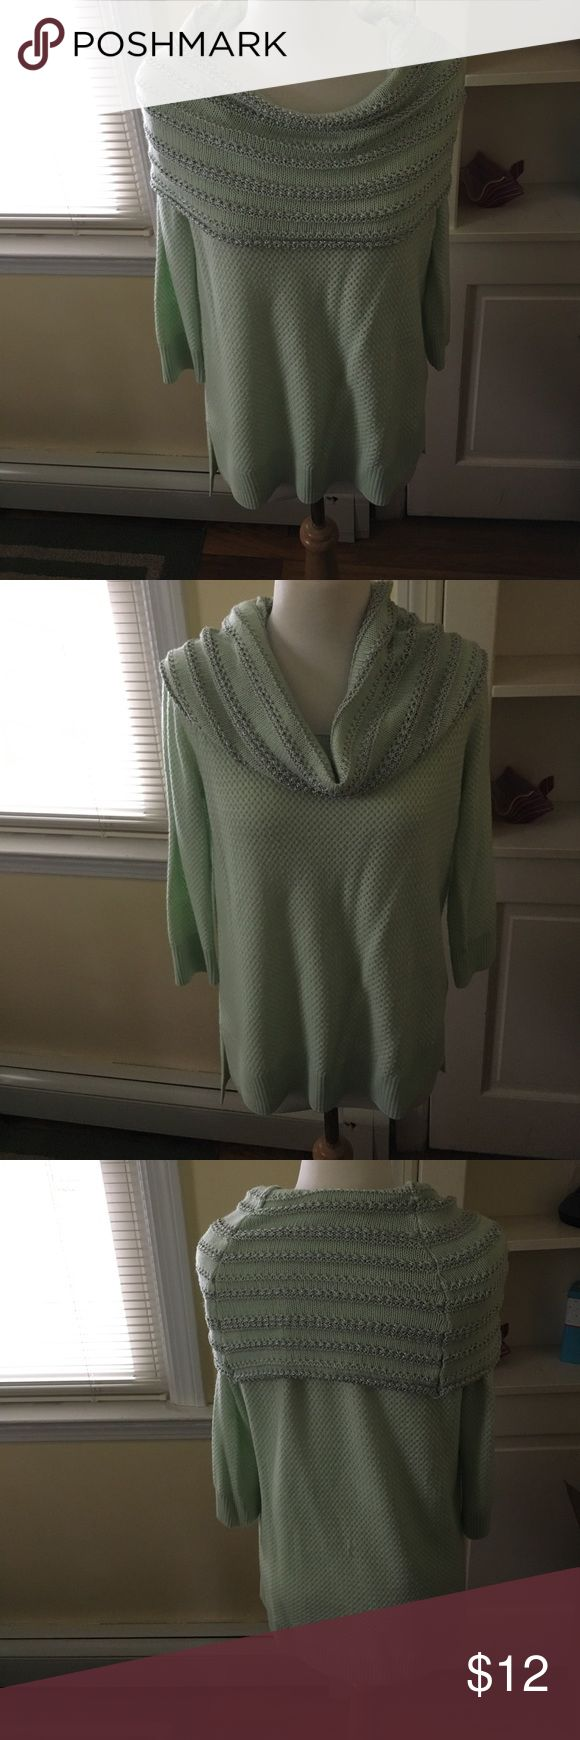 New York and Company Cowl Neck Sweater. New York and Company Cowl Neck Sweater. Size medium. Excellent condition. Light mint green with silver cowl neck stripes. New York & Company Sweaters Cowl & Turtlenecks